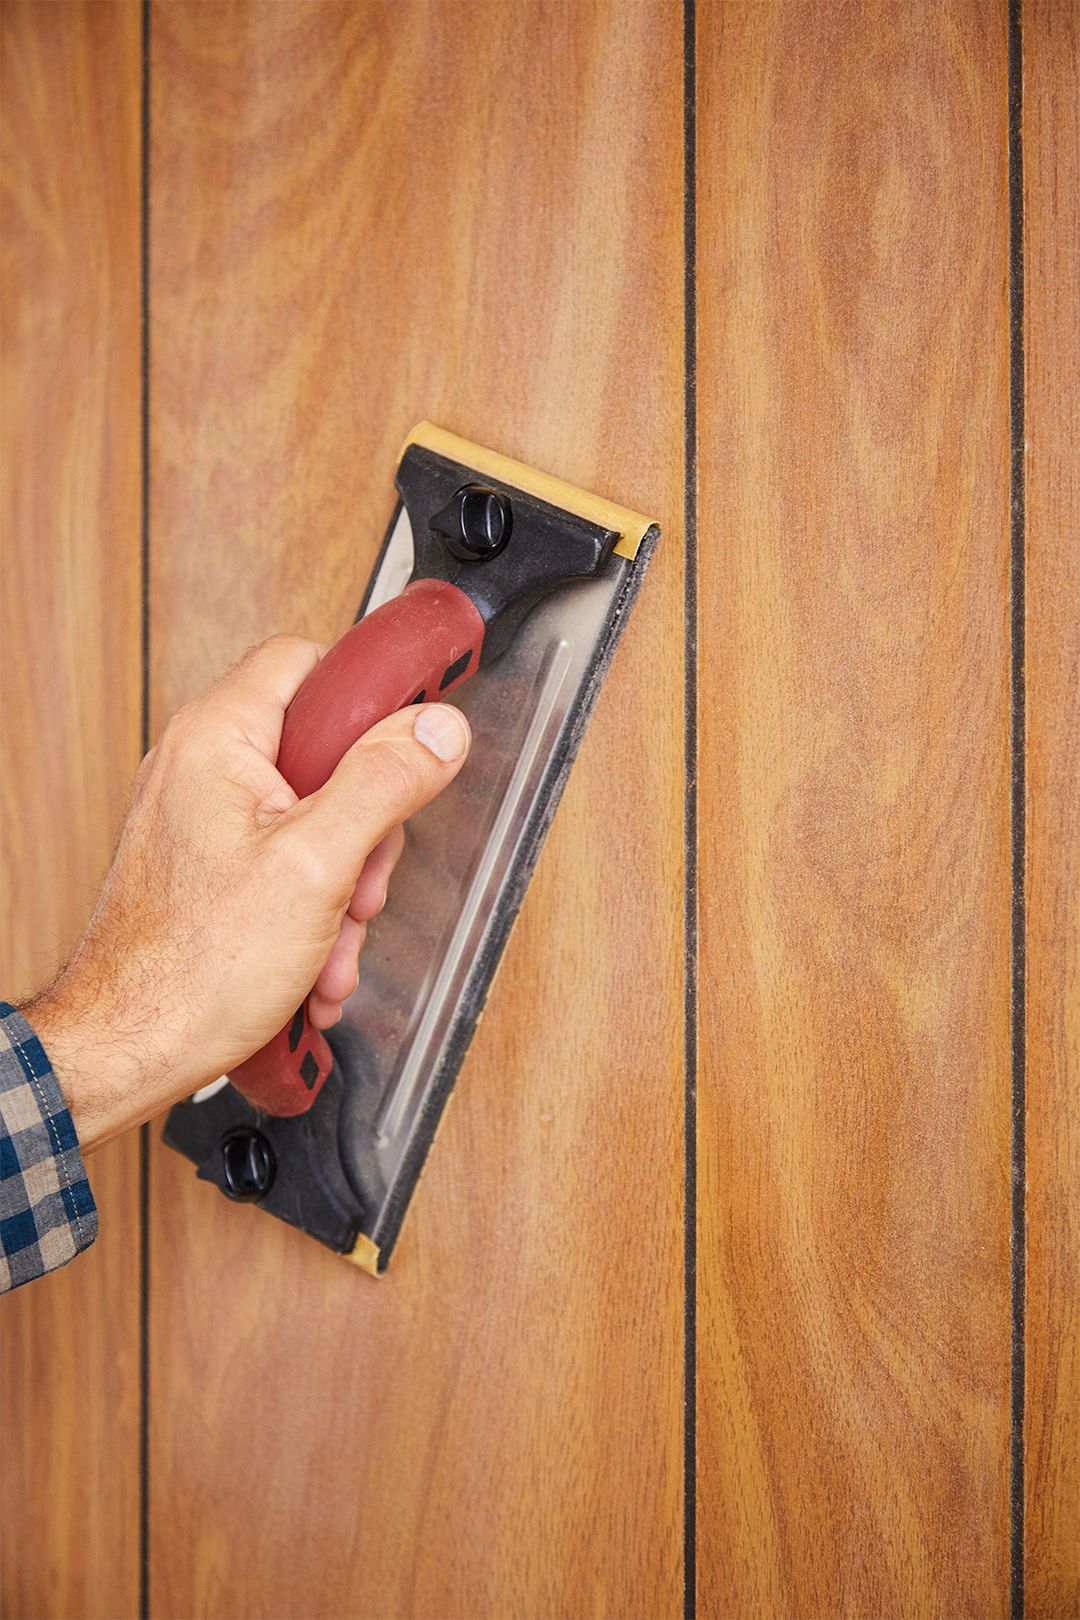 How To Paint Wood Paneling Like A Pro Painting Wood Paneling Wood Paneling Painting Over Paneling